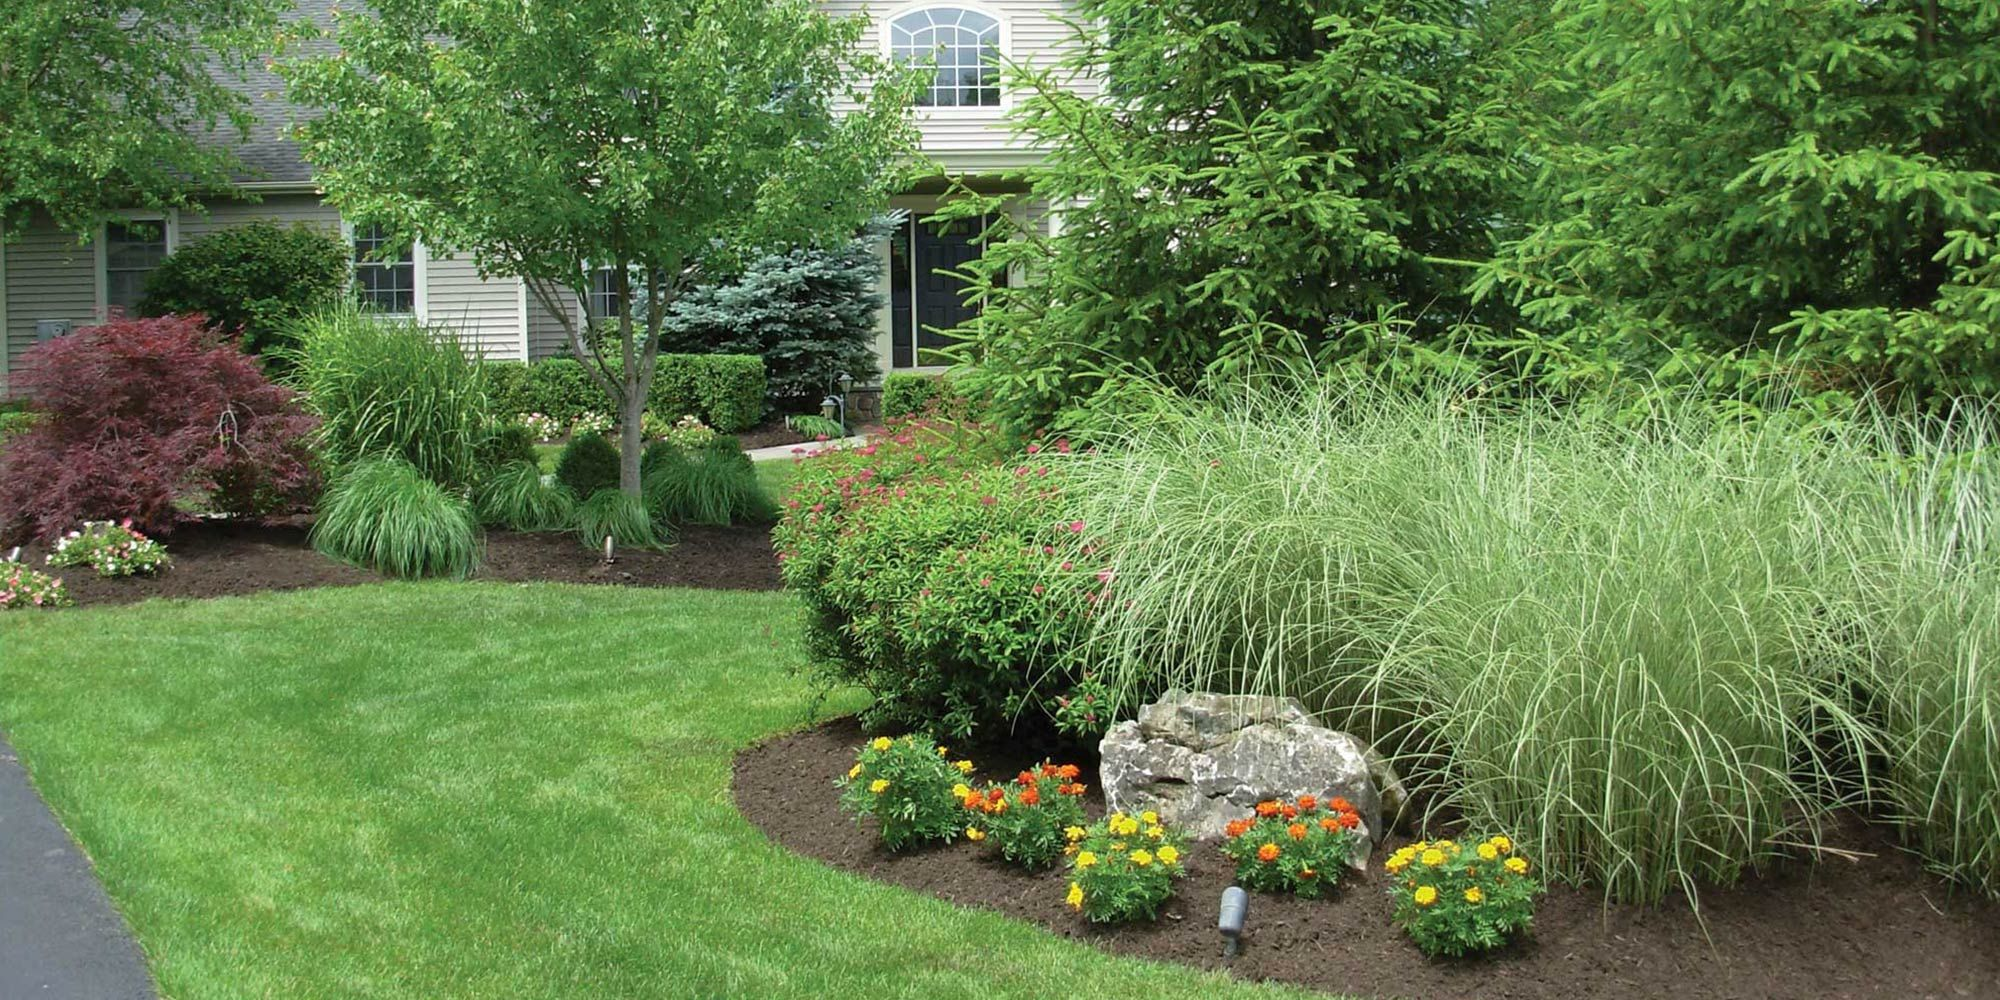 nj landscape design build landscaping maintenance and snow removal - Garden Design Jersey